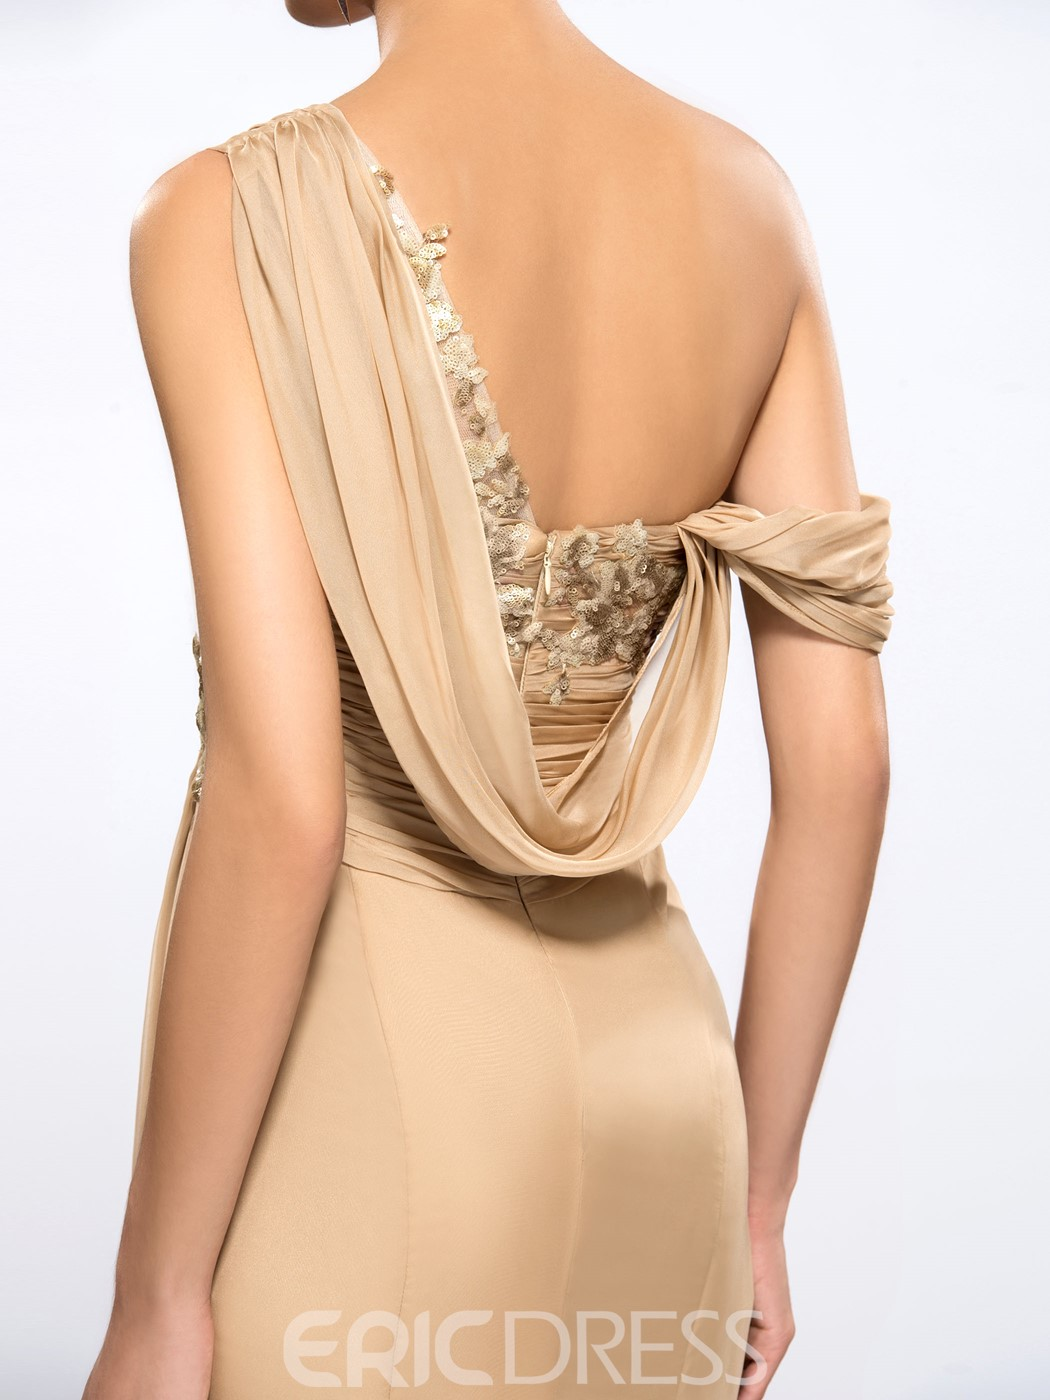 Ericdress One-shoulder Sequins Evening Dress